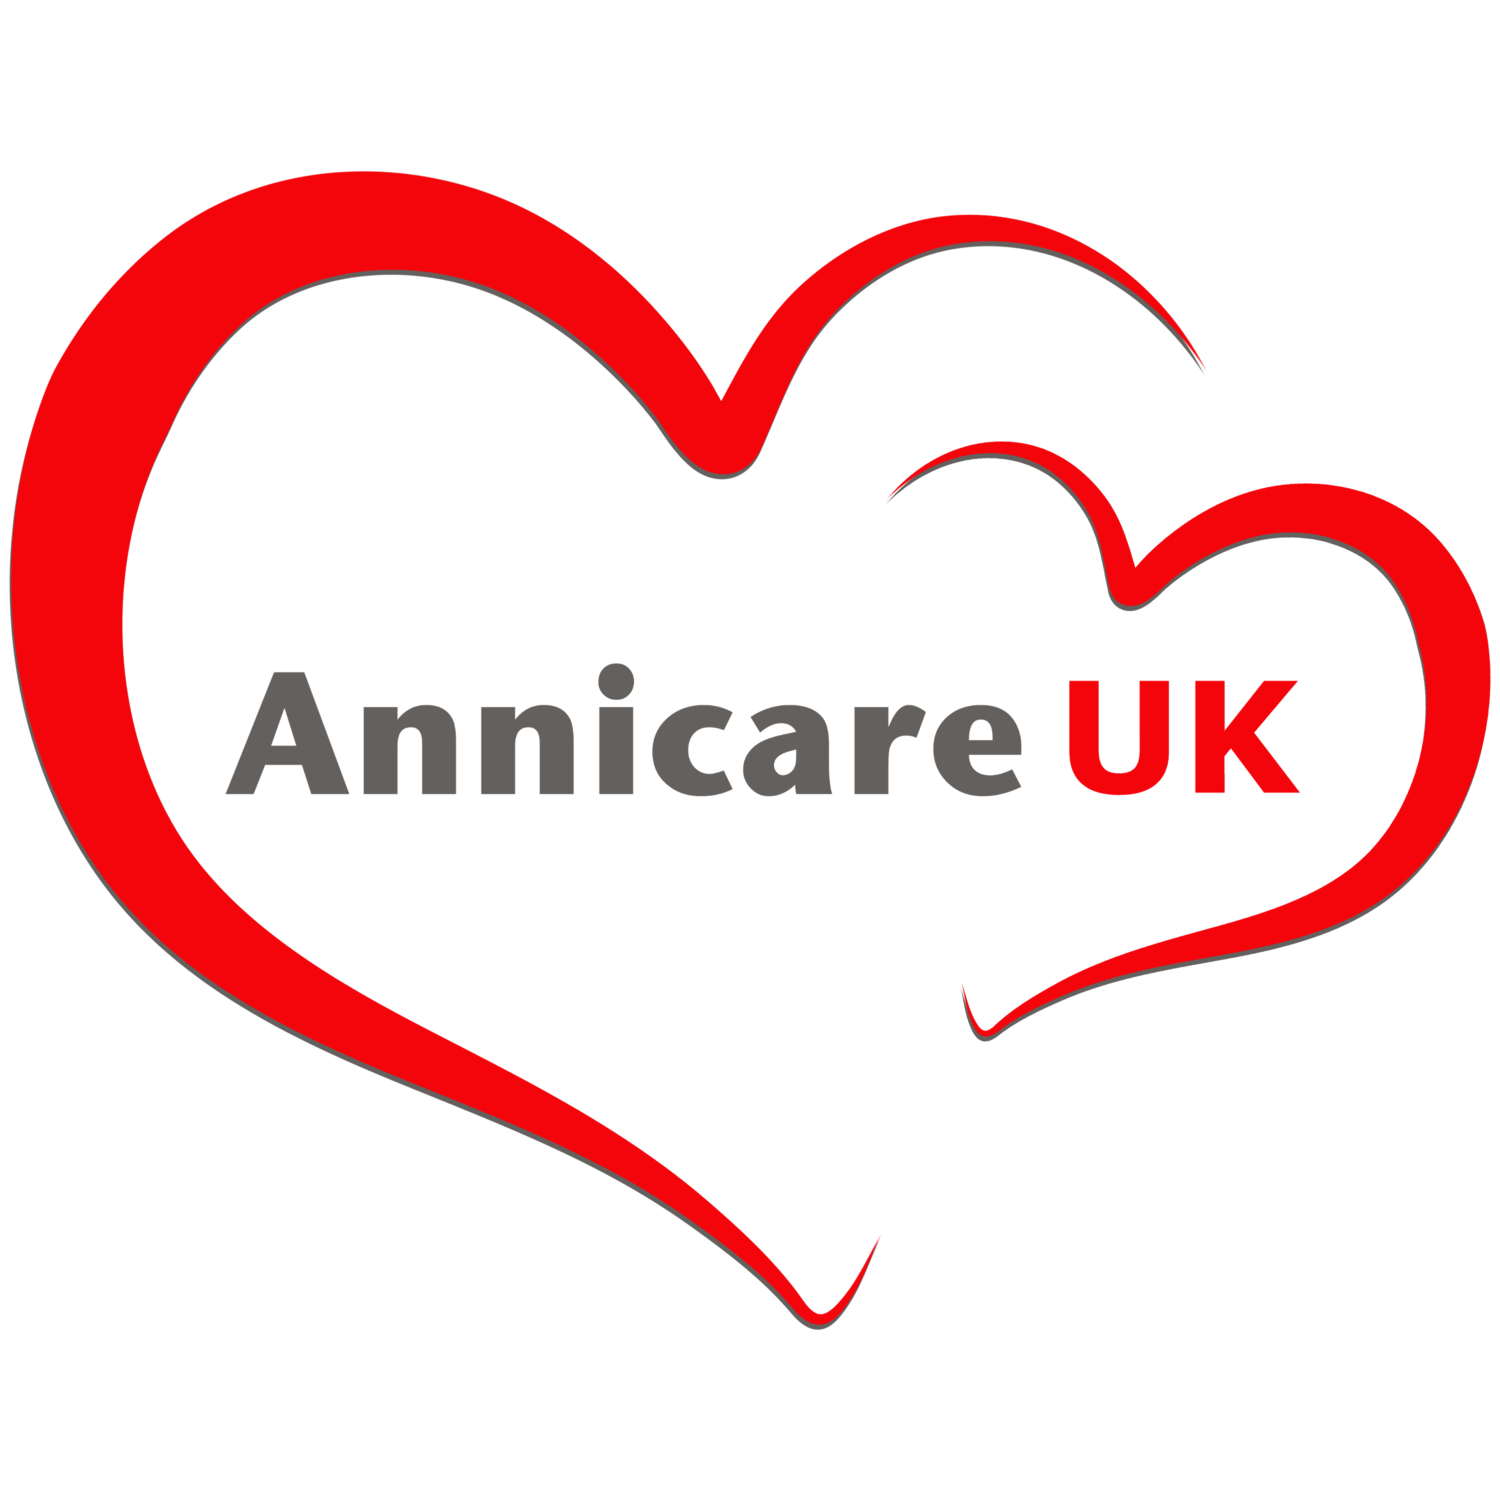 Annicare UK LTD